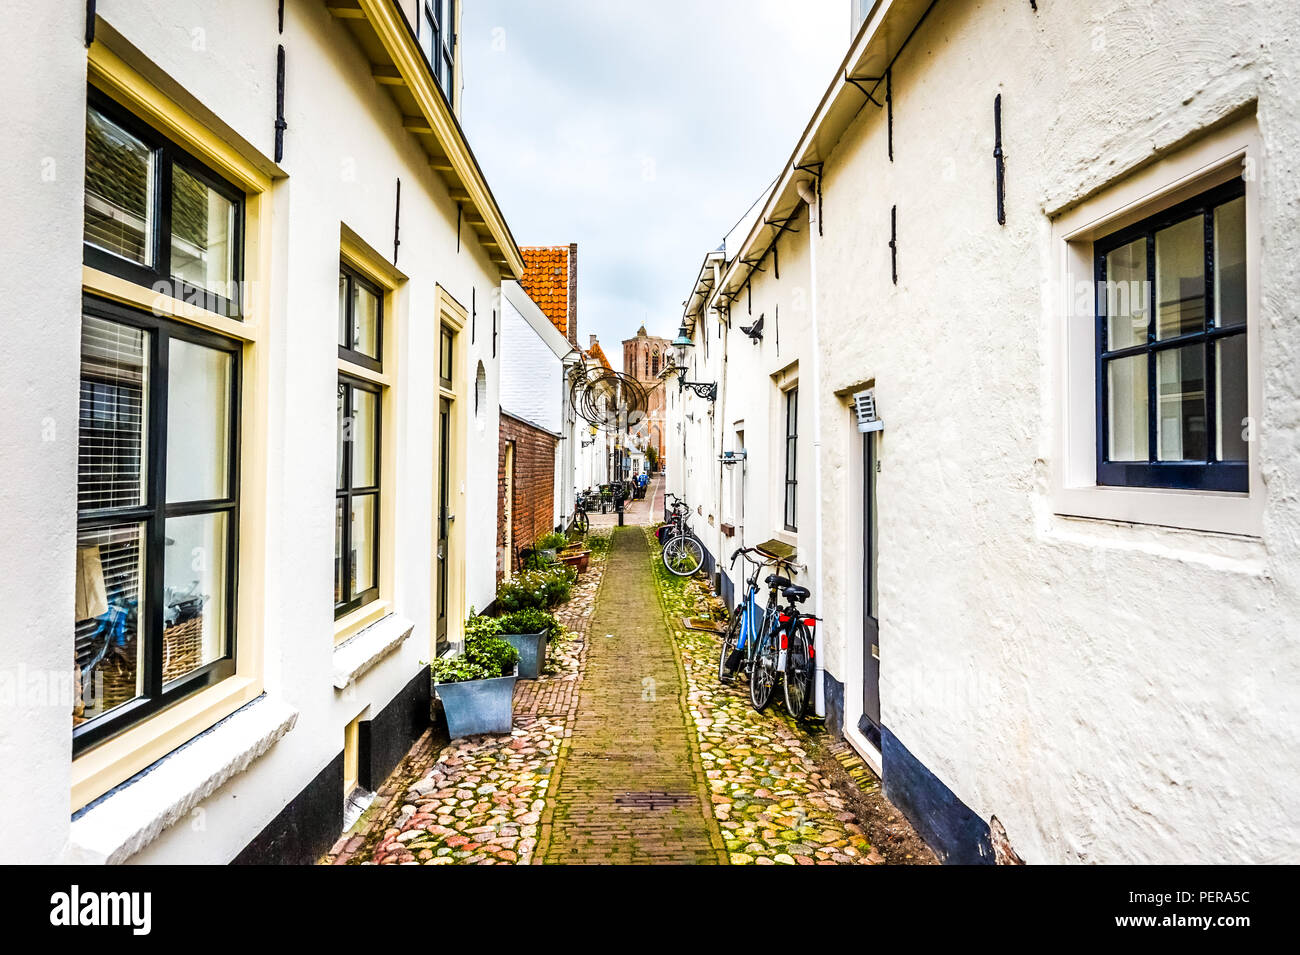 Narrow cobblestone streets in the centuries old Dutch fishing village of Elburg in the heart of Holland - Stock Image